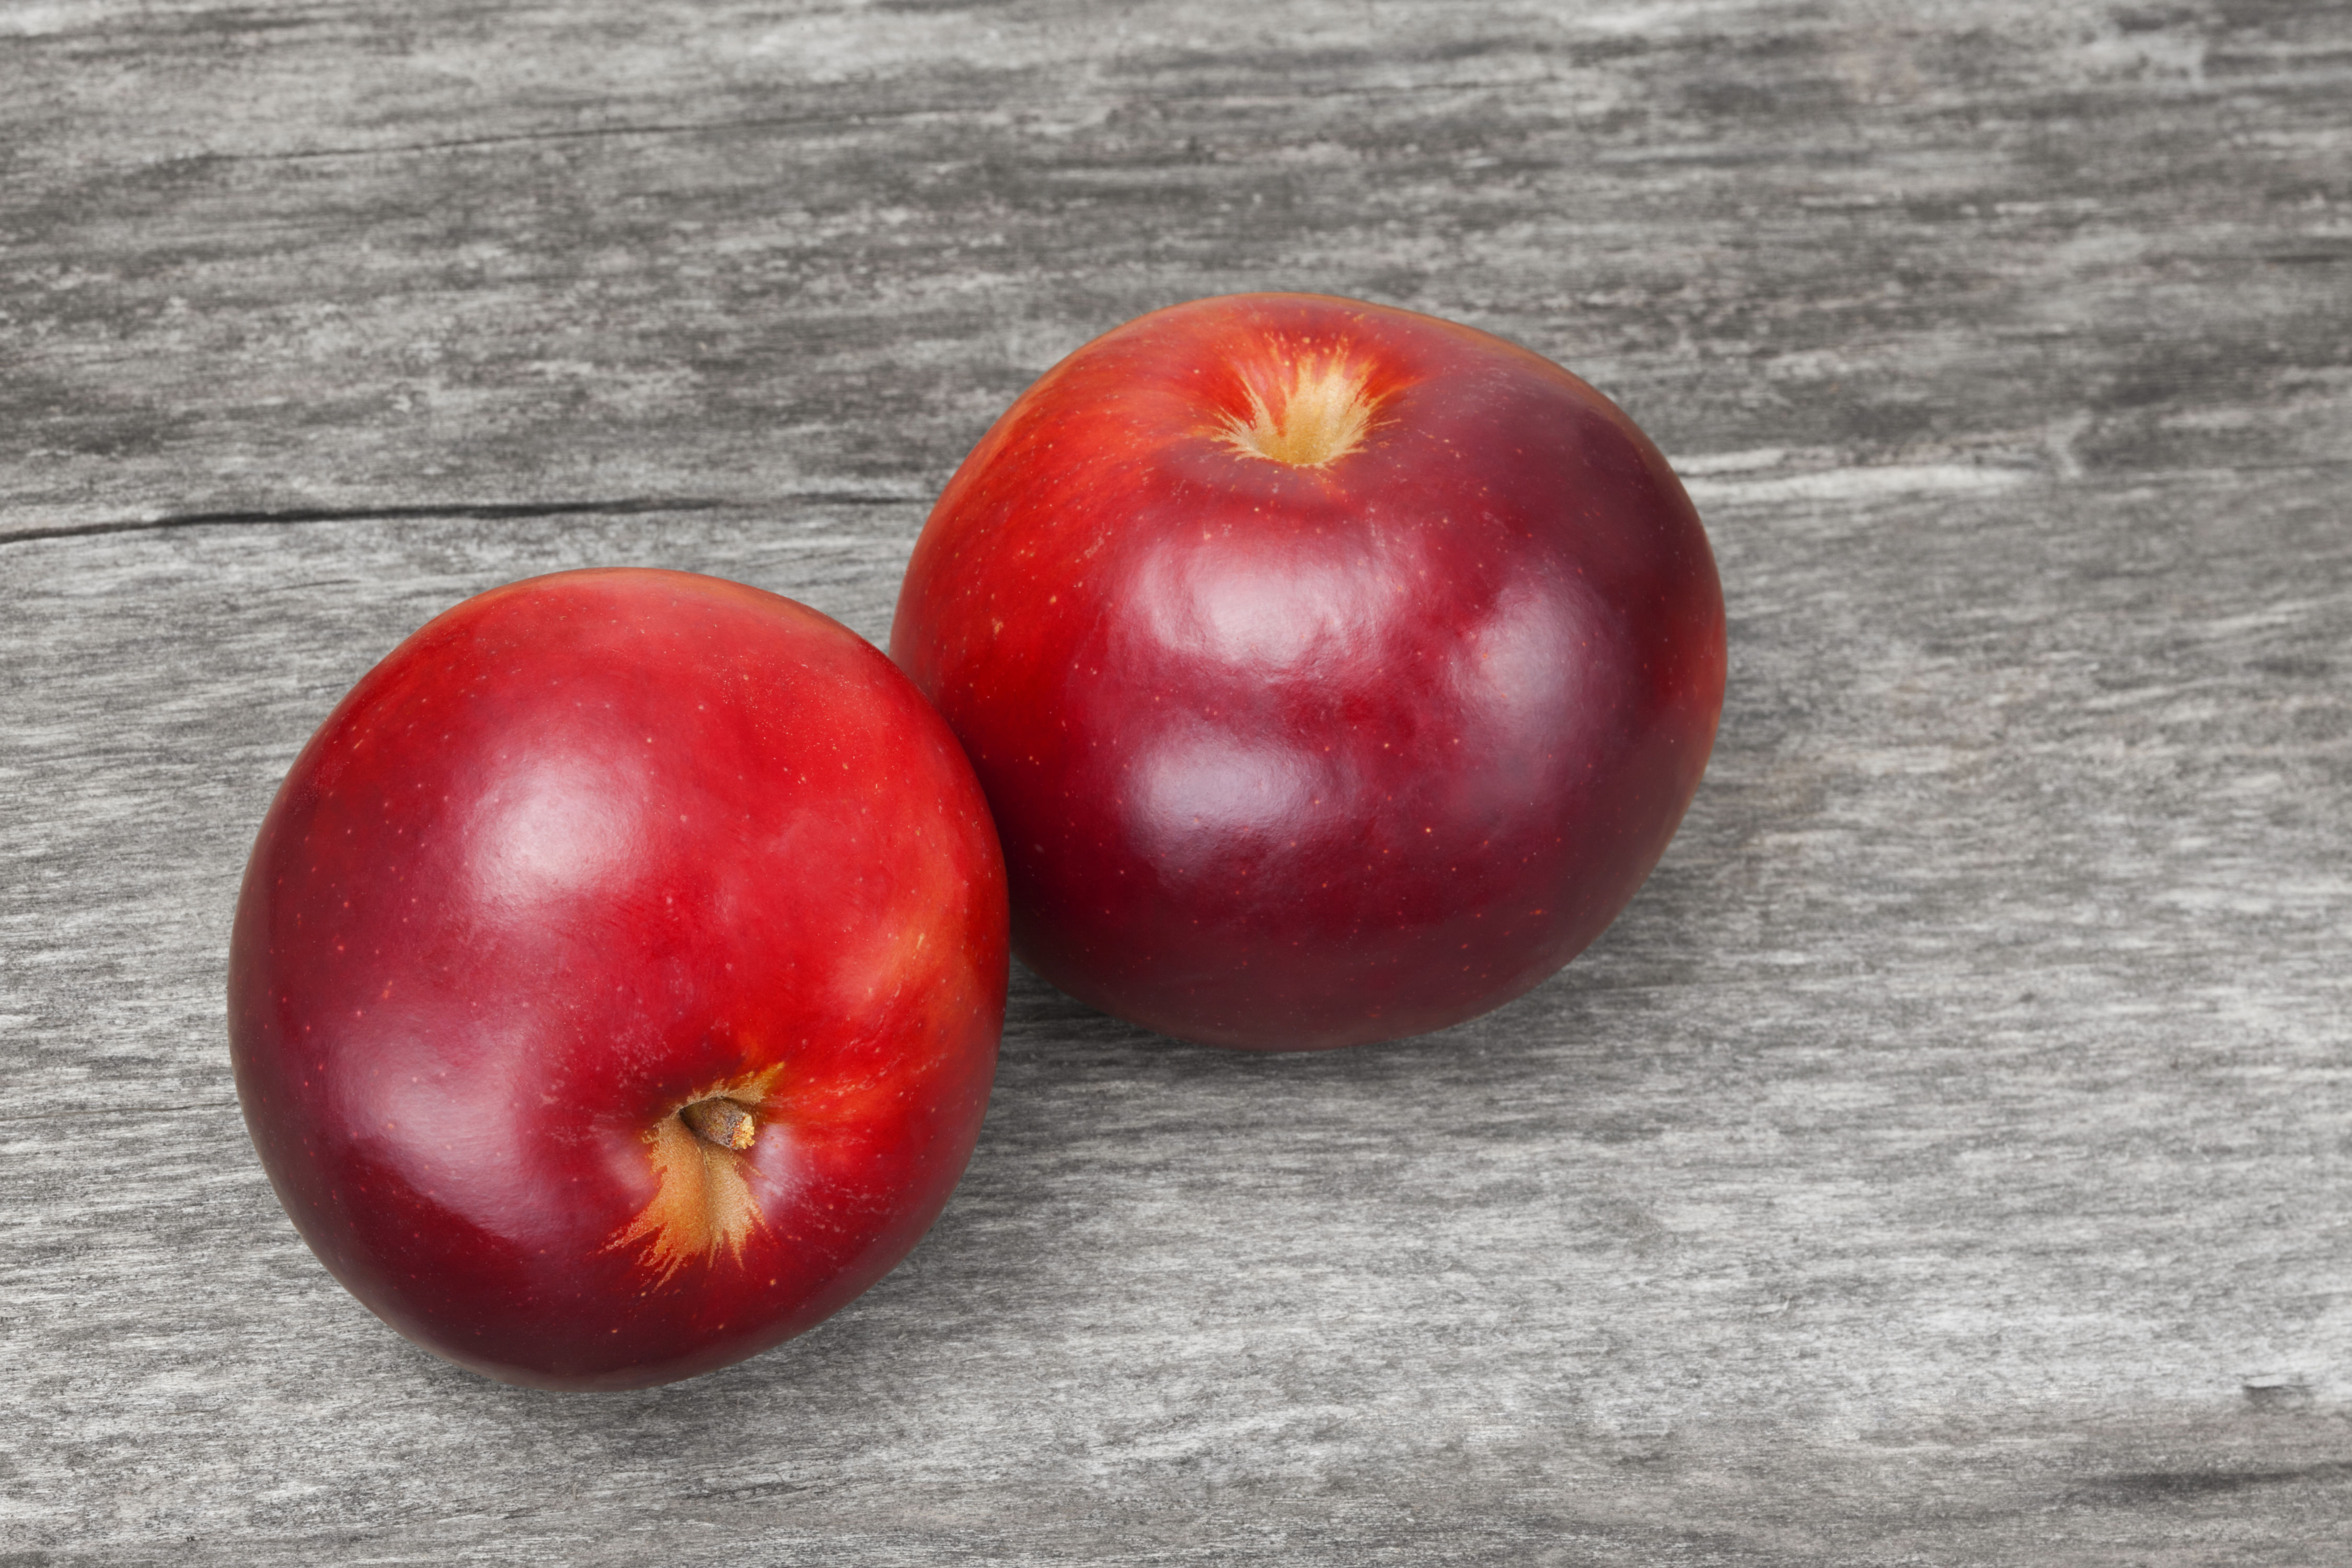 The Arkansas Black Apple is the Rare Fruit Every Southerner Must Try